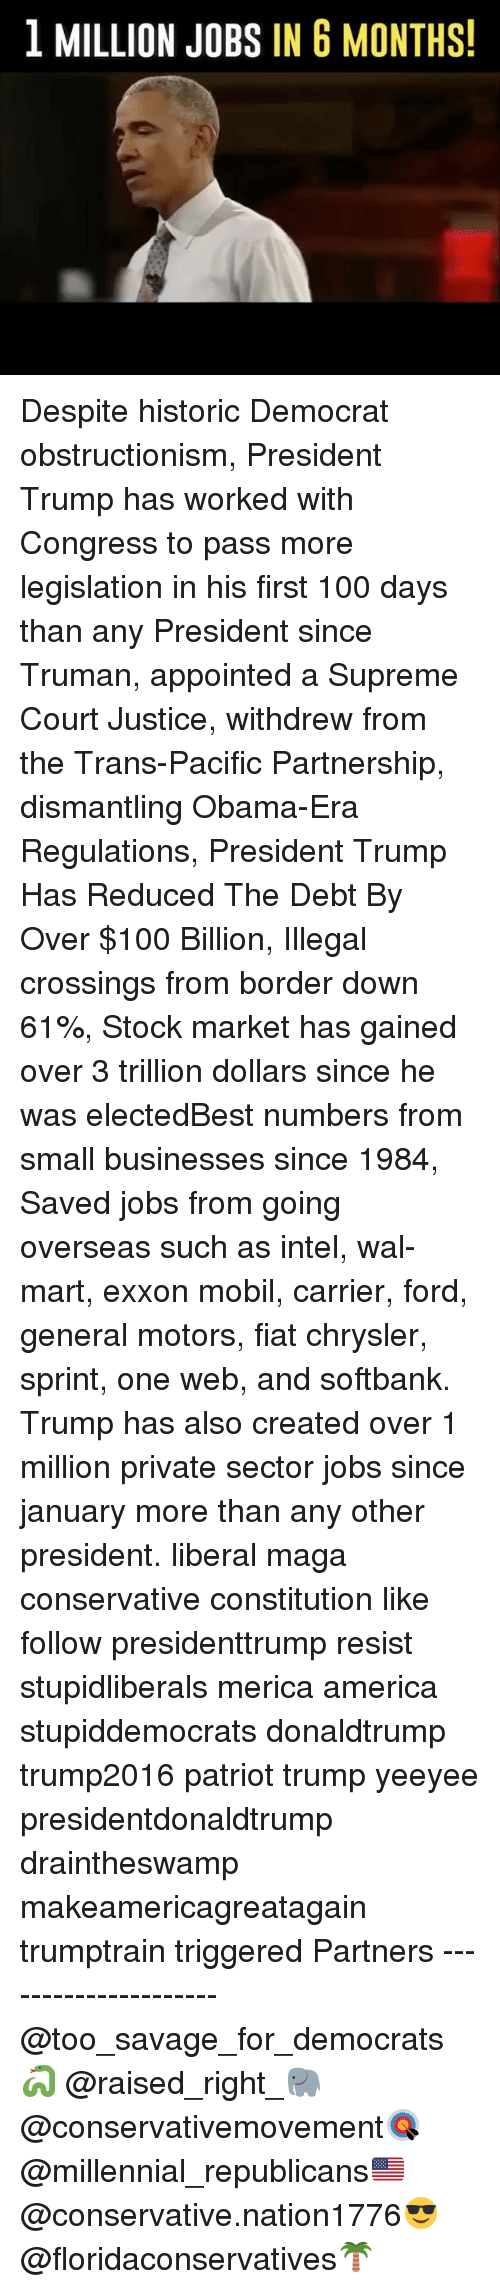 Mobil: 1 MILLION JOBS IN 6 MONTHS! Despite historic Democrat obstructionism, President Trump has worked with Congress to pass more legislation in his first 100 days than any President since Truman, appointed a Supreme Court Justice, withdrew from the Trans-Pacific Partnership, dismantling Obama-Era Regulations, President Trump Has Reduced The Debt By Over $100 Billion, Illegal crossings from border down 61%, Stock market has gained over 3 trillion dollars since he was electedBest numbers from small businesses since 1984, Saved jobs from going overseas such as intel, wal-mart, exxon mobil, carrier, ford, general motors, fiat chrysler, sprint, one web, and softbank. Trump has also created over 1 million private sector jobs since january more than any other president. liberal maga conservative constitution like follow presidenttrump resist stupidliberals merica america stupiddemocrats donaldtrump trump2016 patriot trump yeeyee presidentdonaldtrump draintheswamp makeamericagreatagain trumptrain triggered Partners --------------------- @too_savage_for_democrats🐍 @raised_right_🐘 @conservativemovement🎯 @millennial_republicans🇺🇸 @conservative.nation1776😎 @floridaconservatives🌴